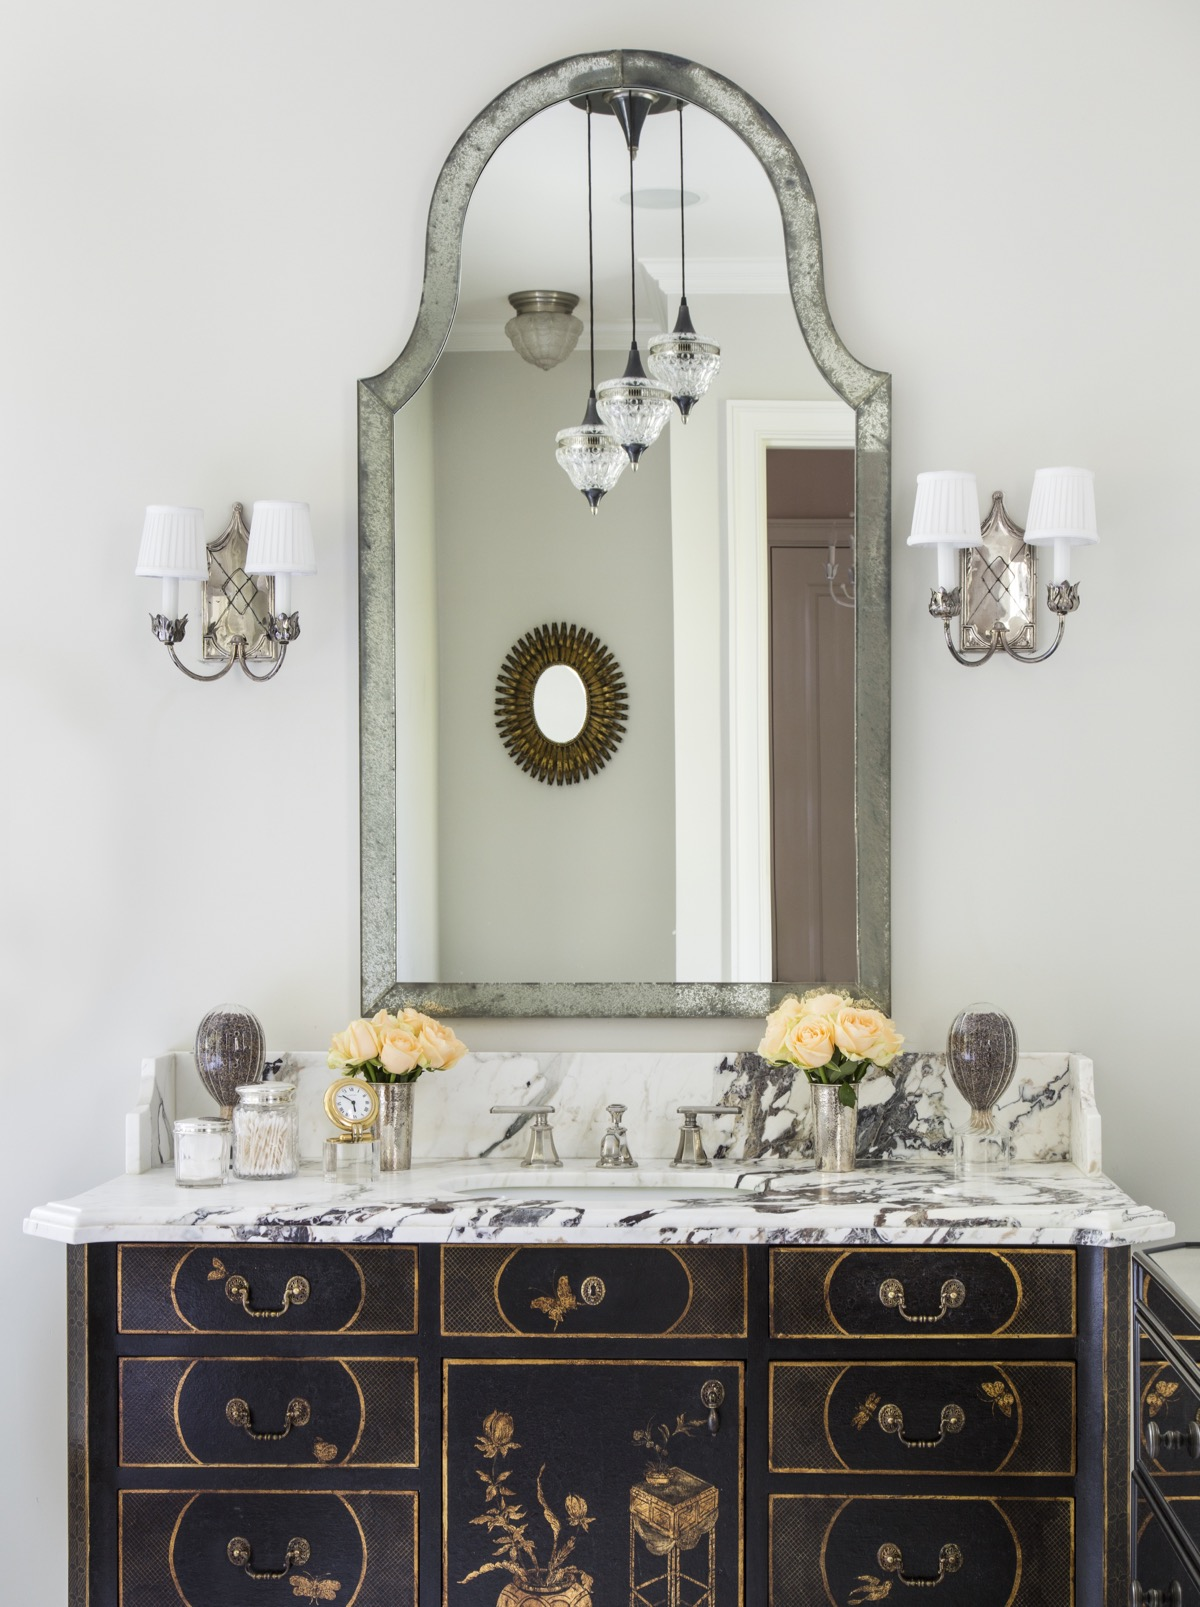 Detail of bathroom vanity with antique finish, stone top, various containers, flowers on countertop.